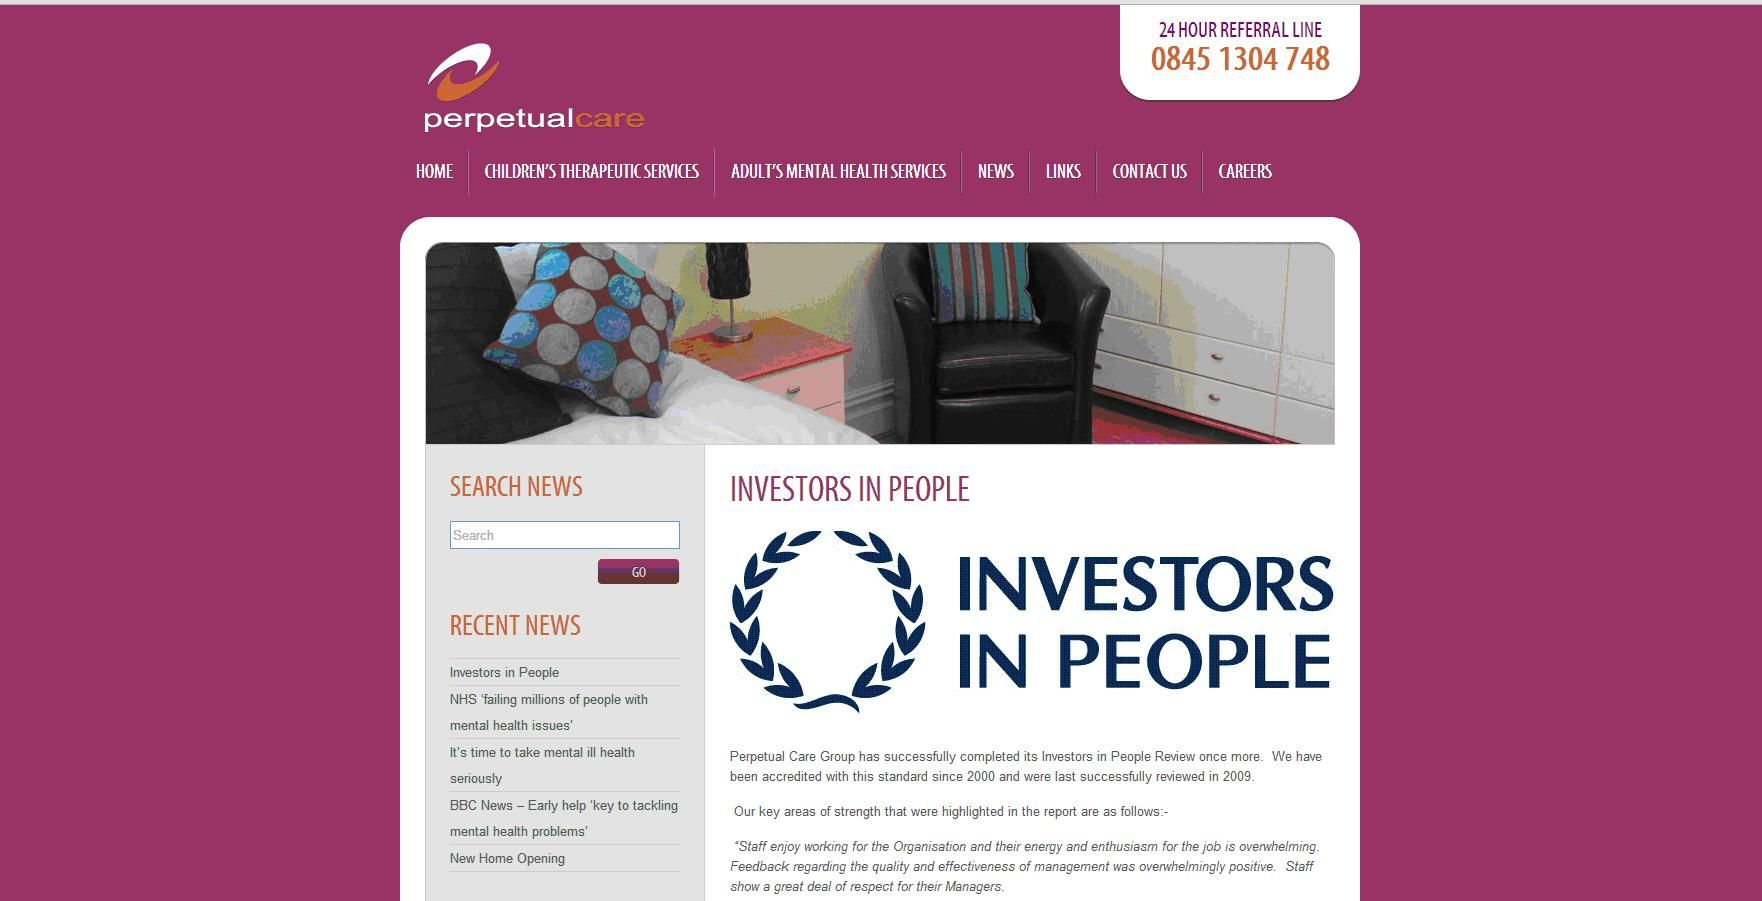 Perpetual Care Group Investors in People Recent news